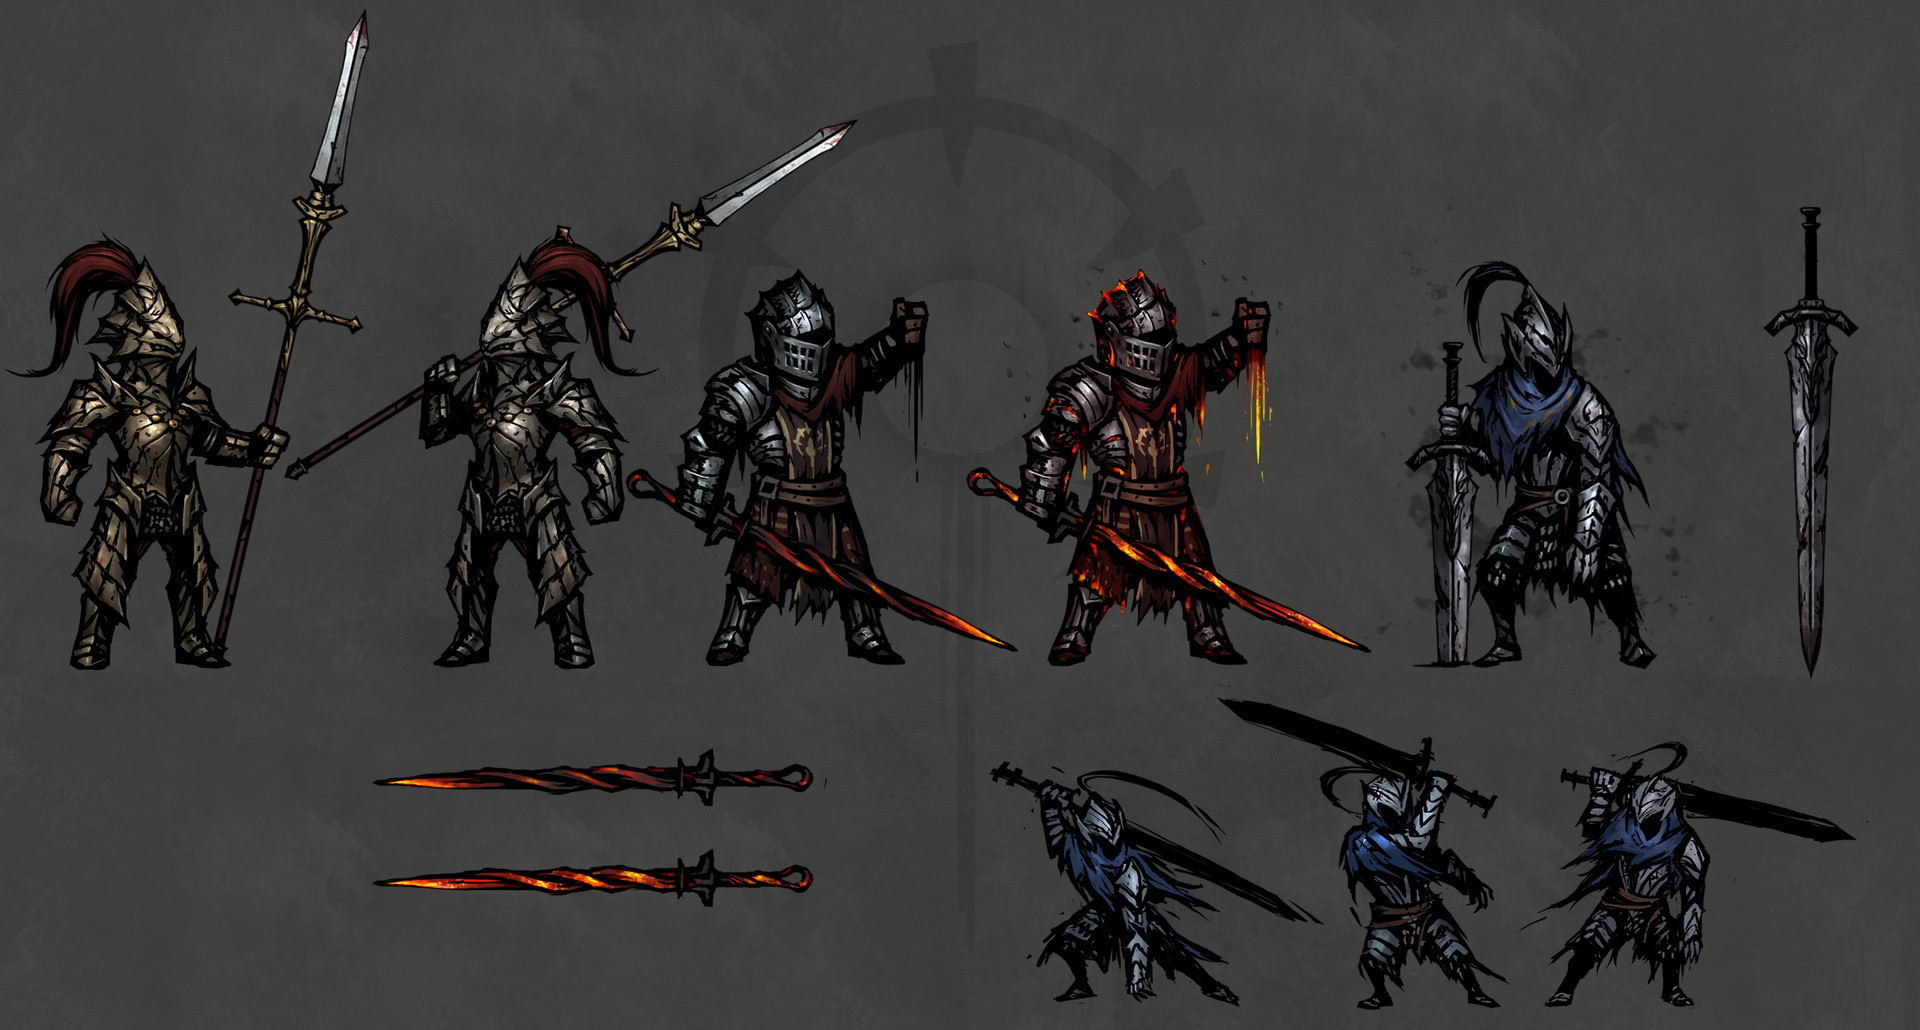 Моды на Darkest Dungeon